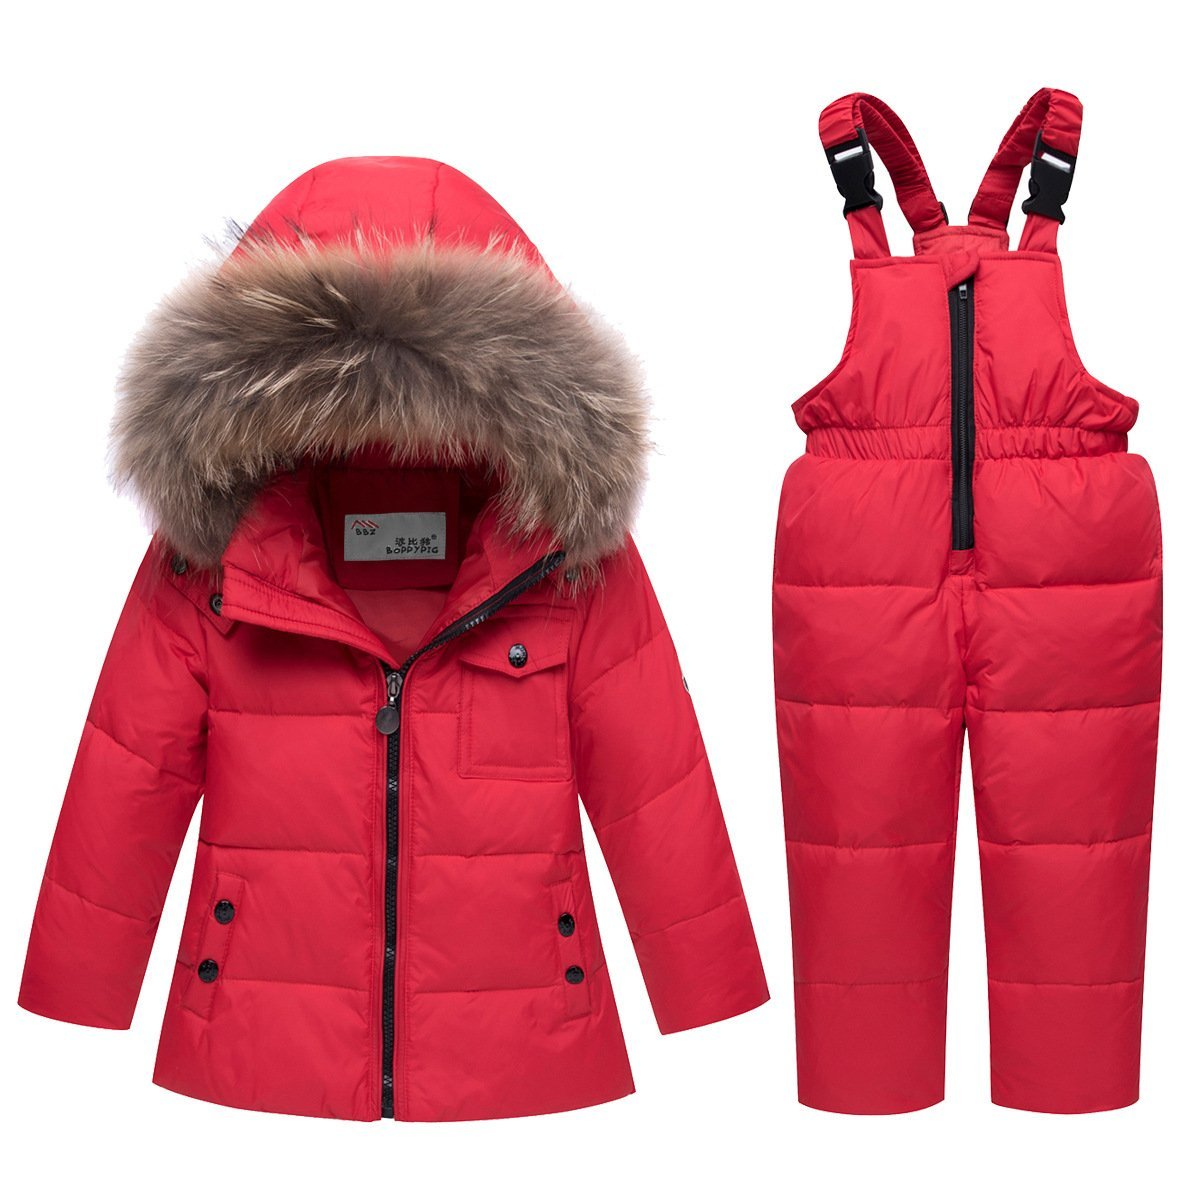 CADong Little Unisex Baby Two Piece Puffer Down Winter Warm Snowsuit Jacket with Snow Ski Bib Pants